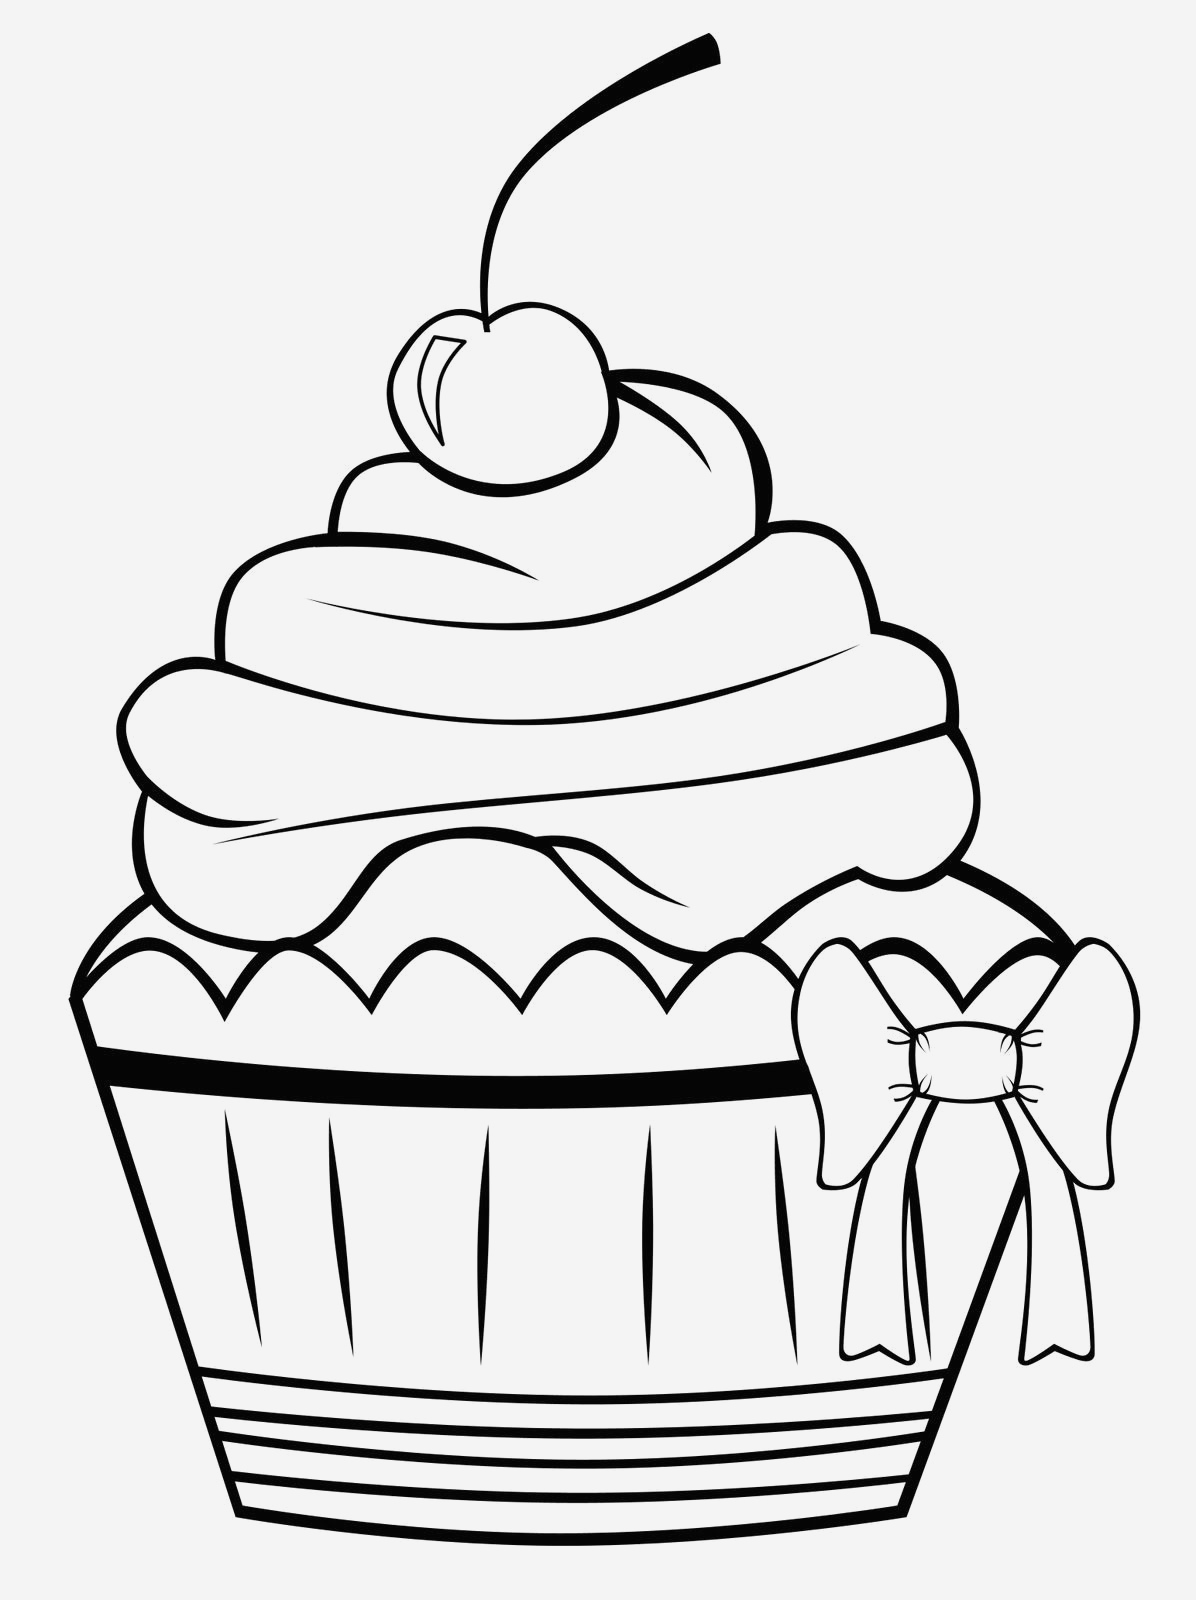 Coloriage Cupcake à Imprimer Elegant 220 Best Coloring Pages Images